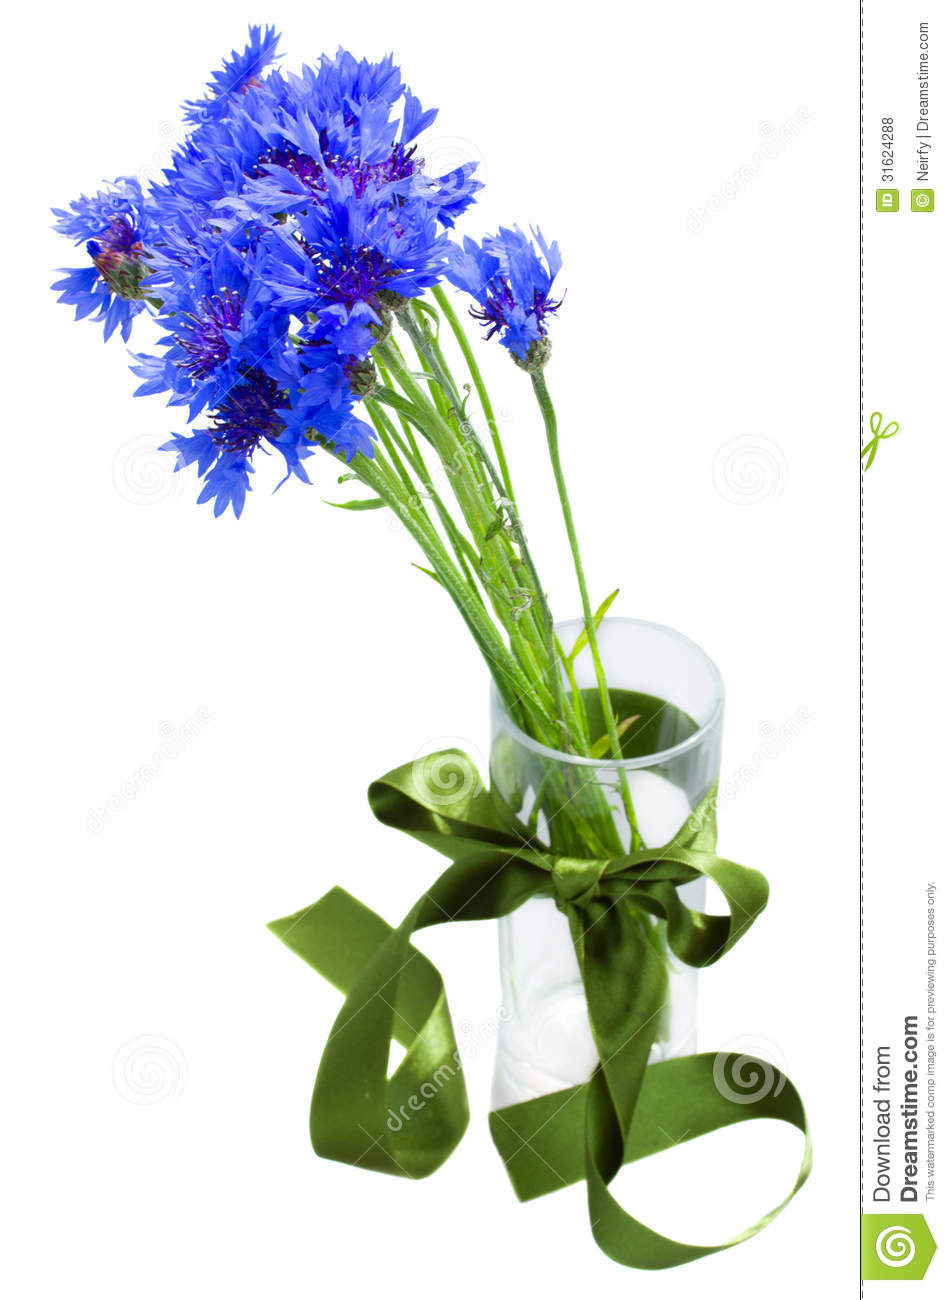 Blue Corn Flowers Bouquet In Vase Royalty Free Stock